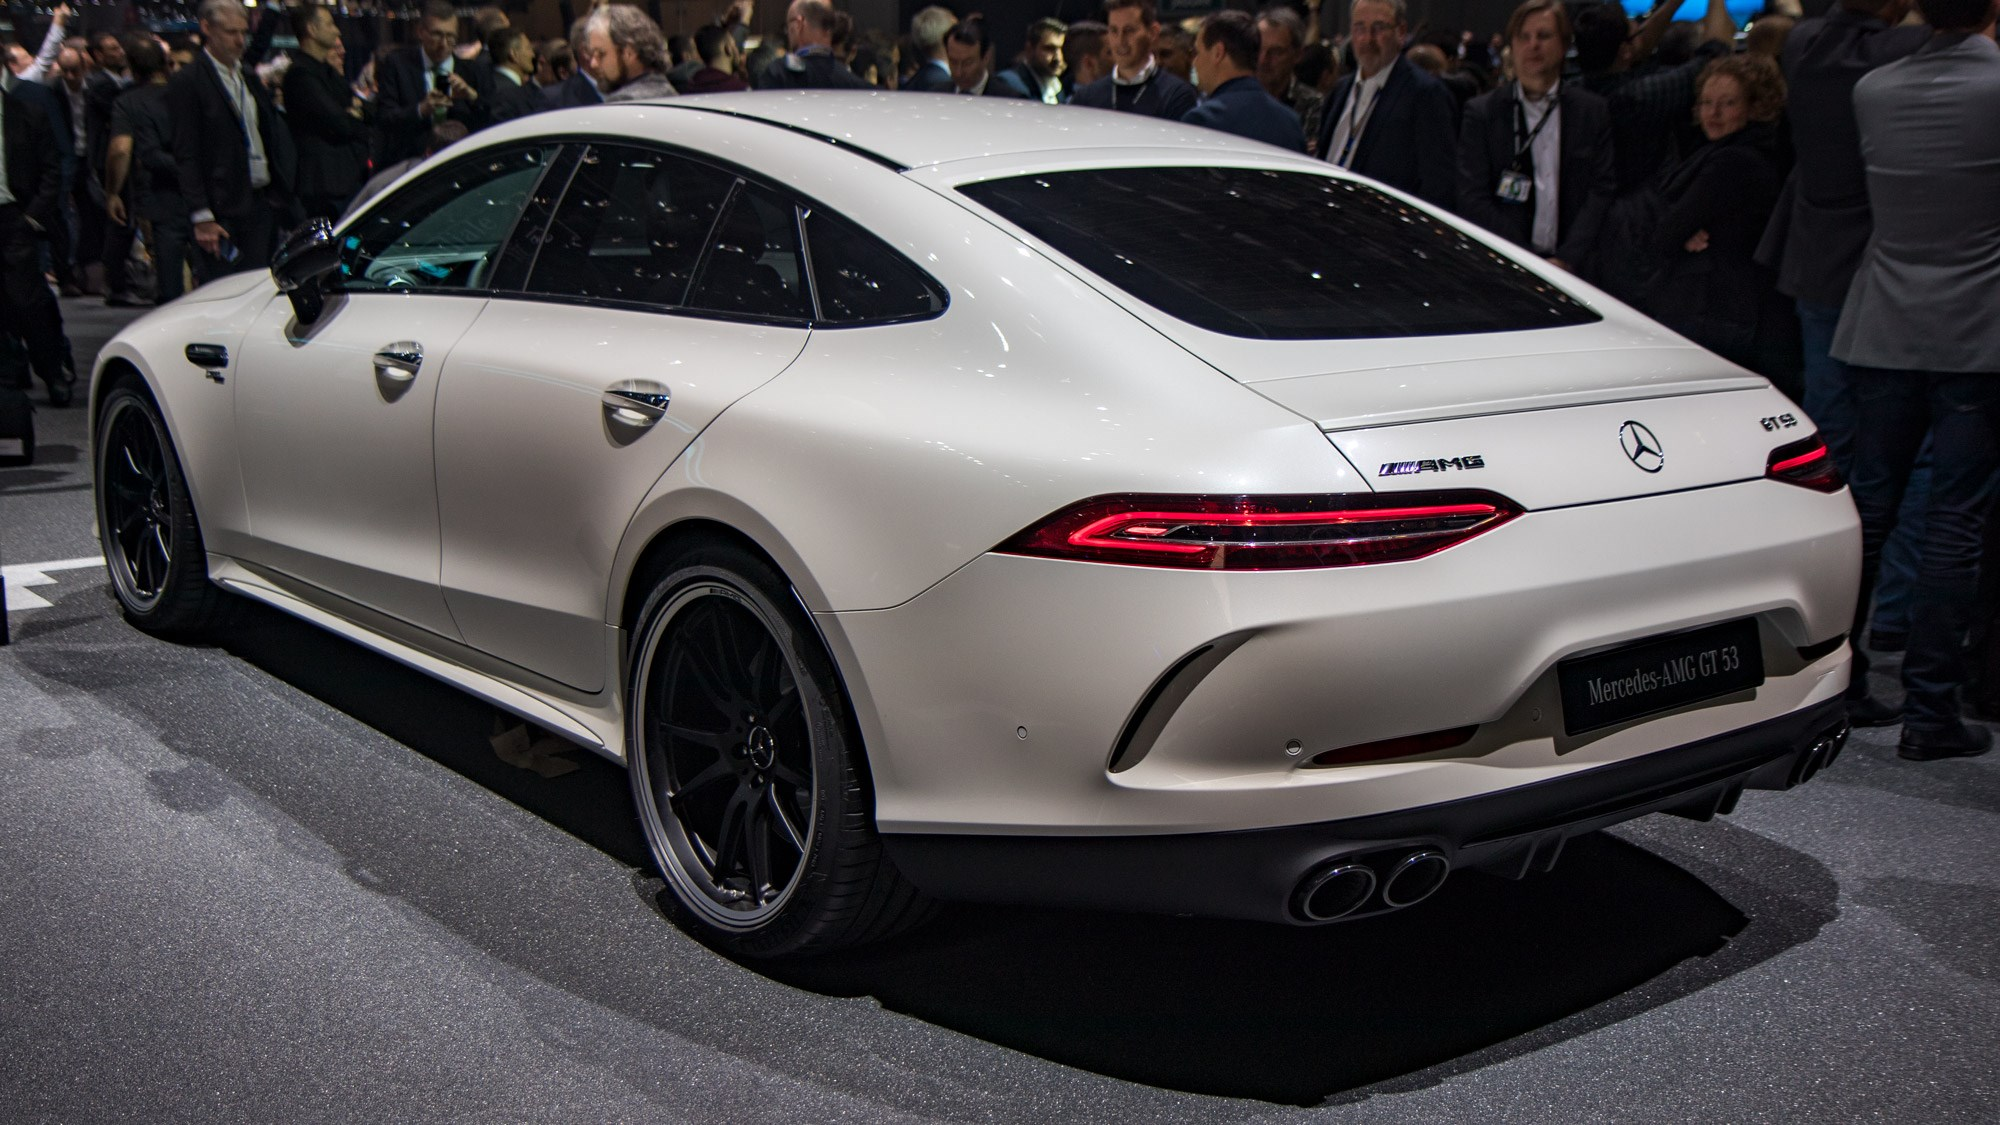 ... Mercedes AMG GT 4 Door Rear ...